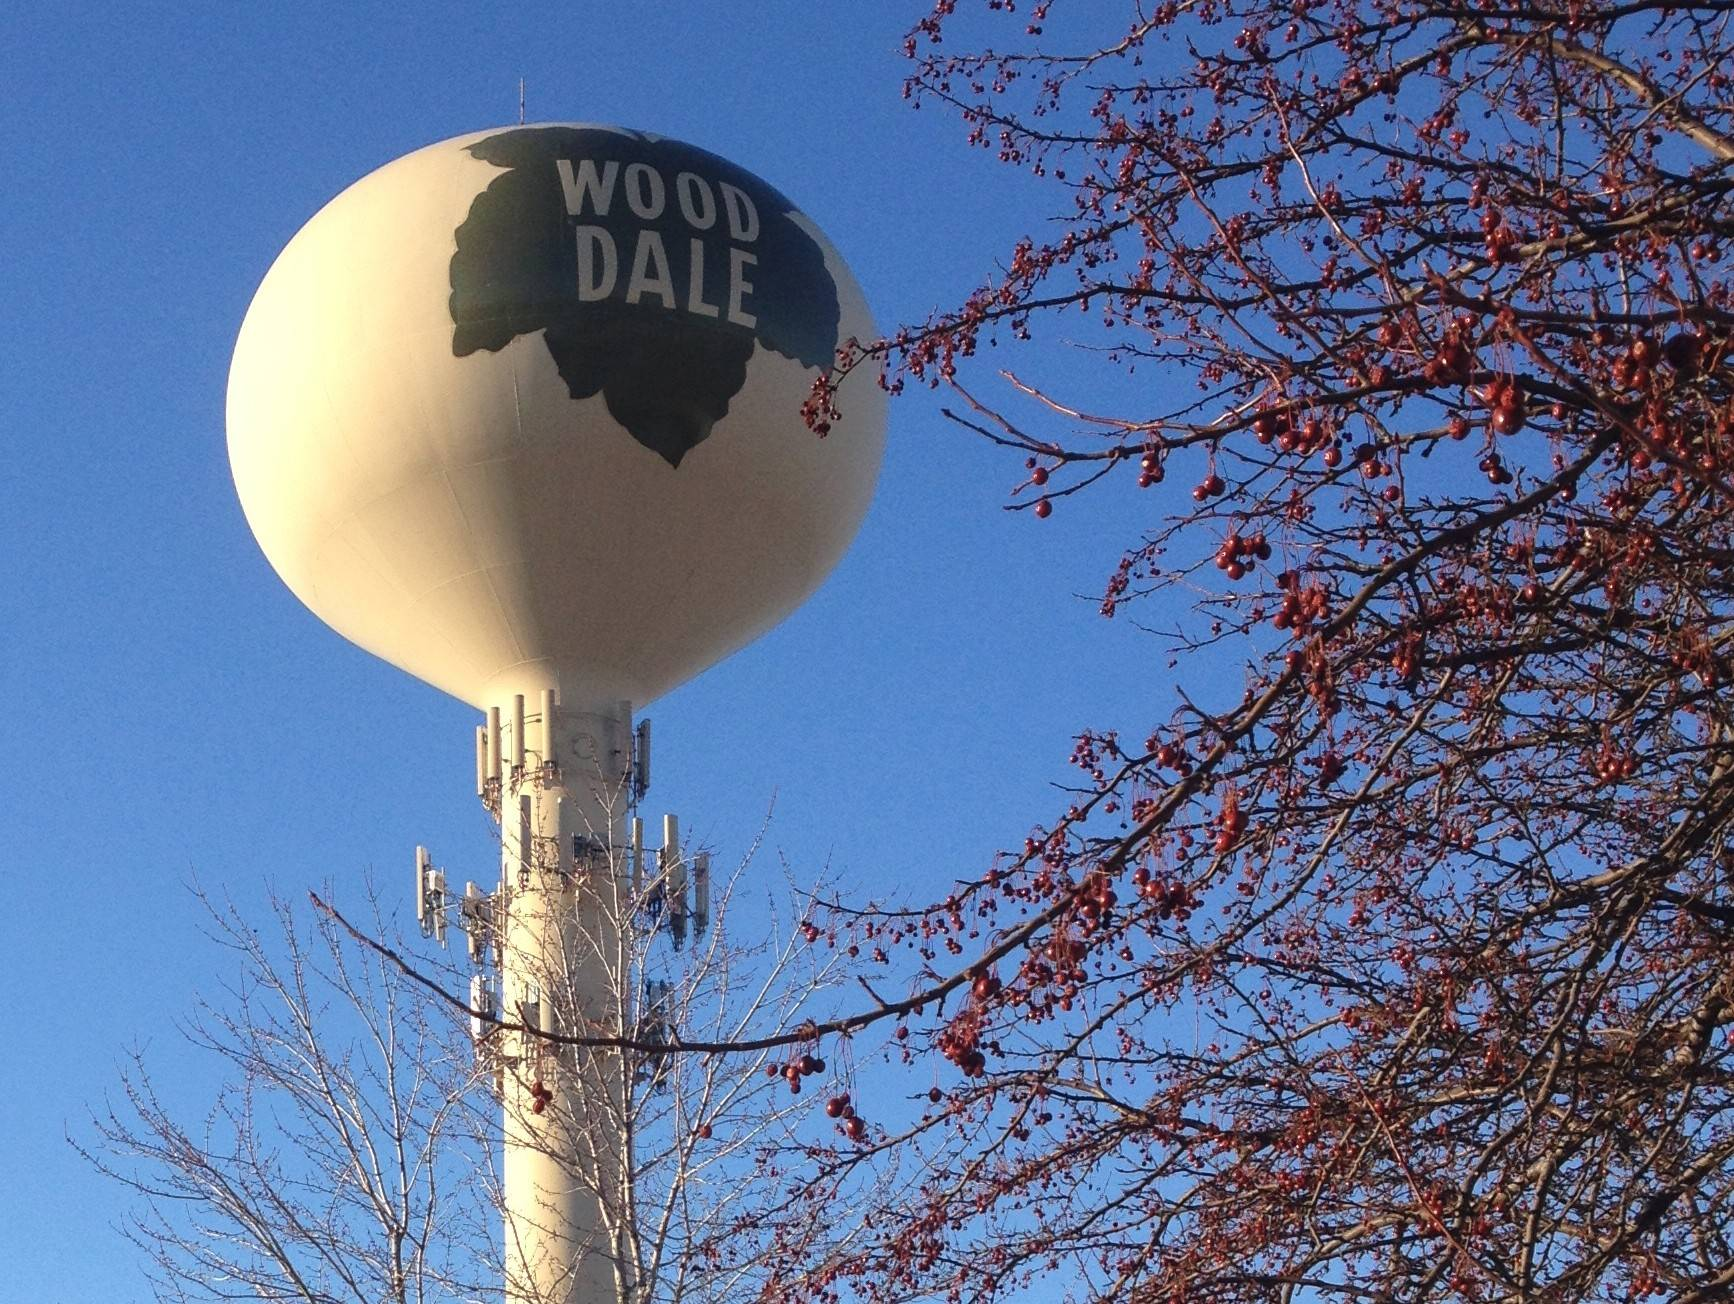 A Wood Dale water tower stands in the office corridor on the north side of town near Devon and Wood Dale Road.